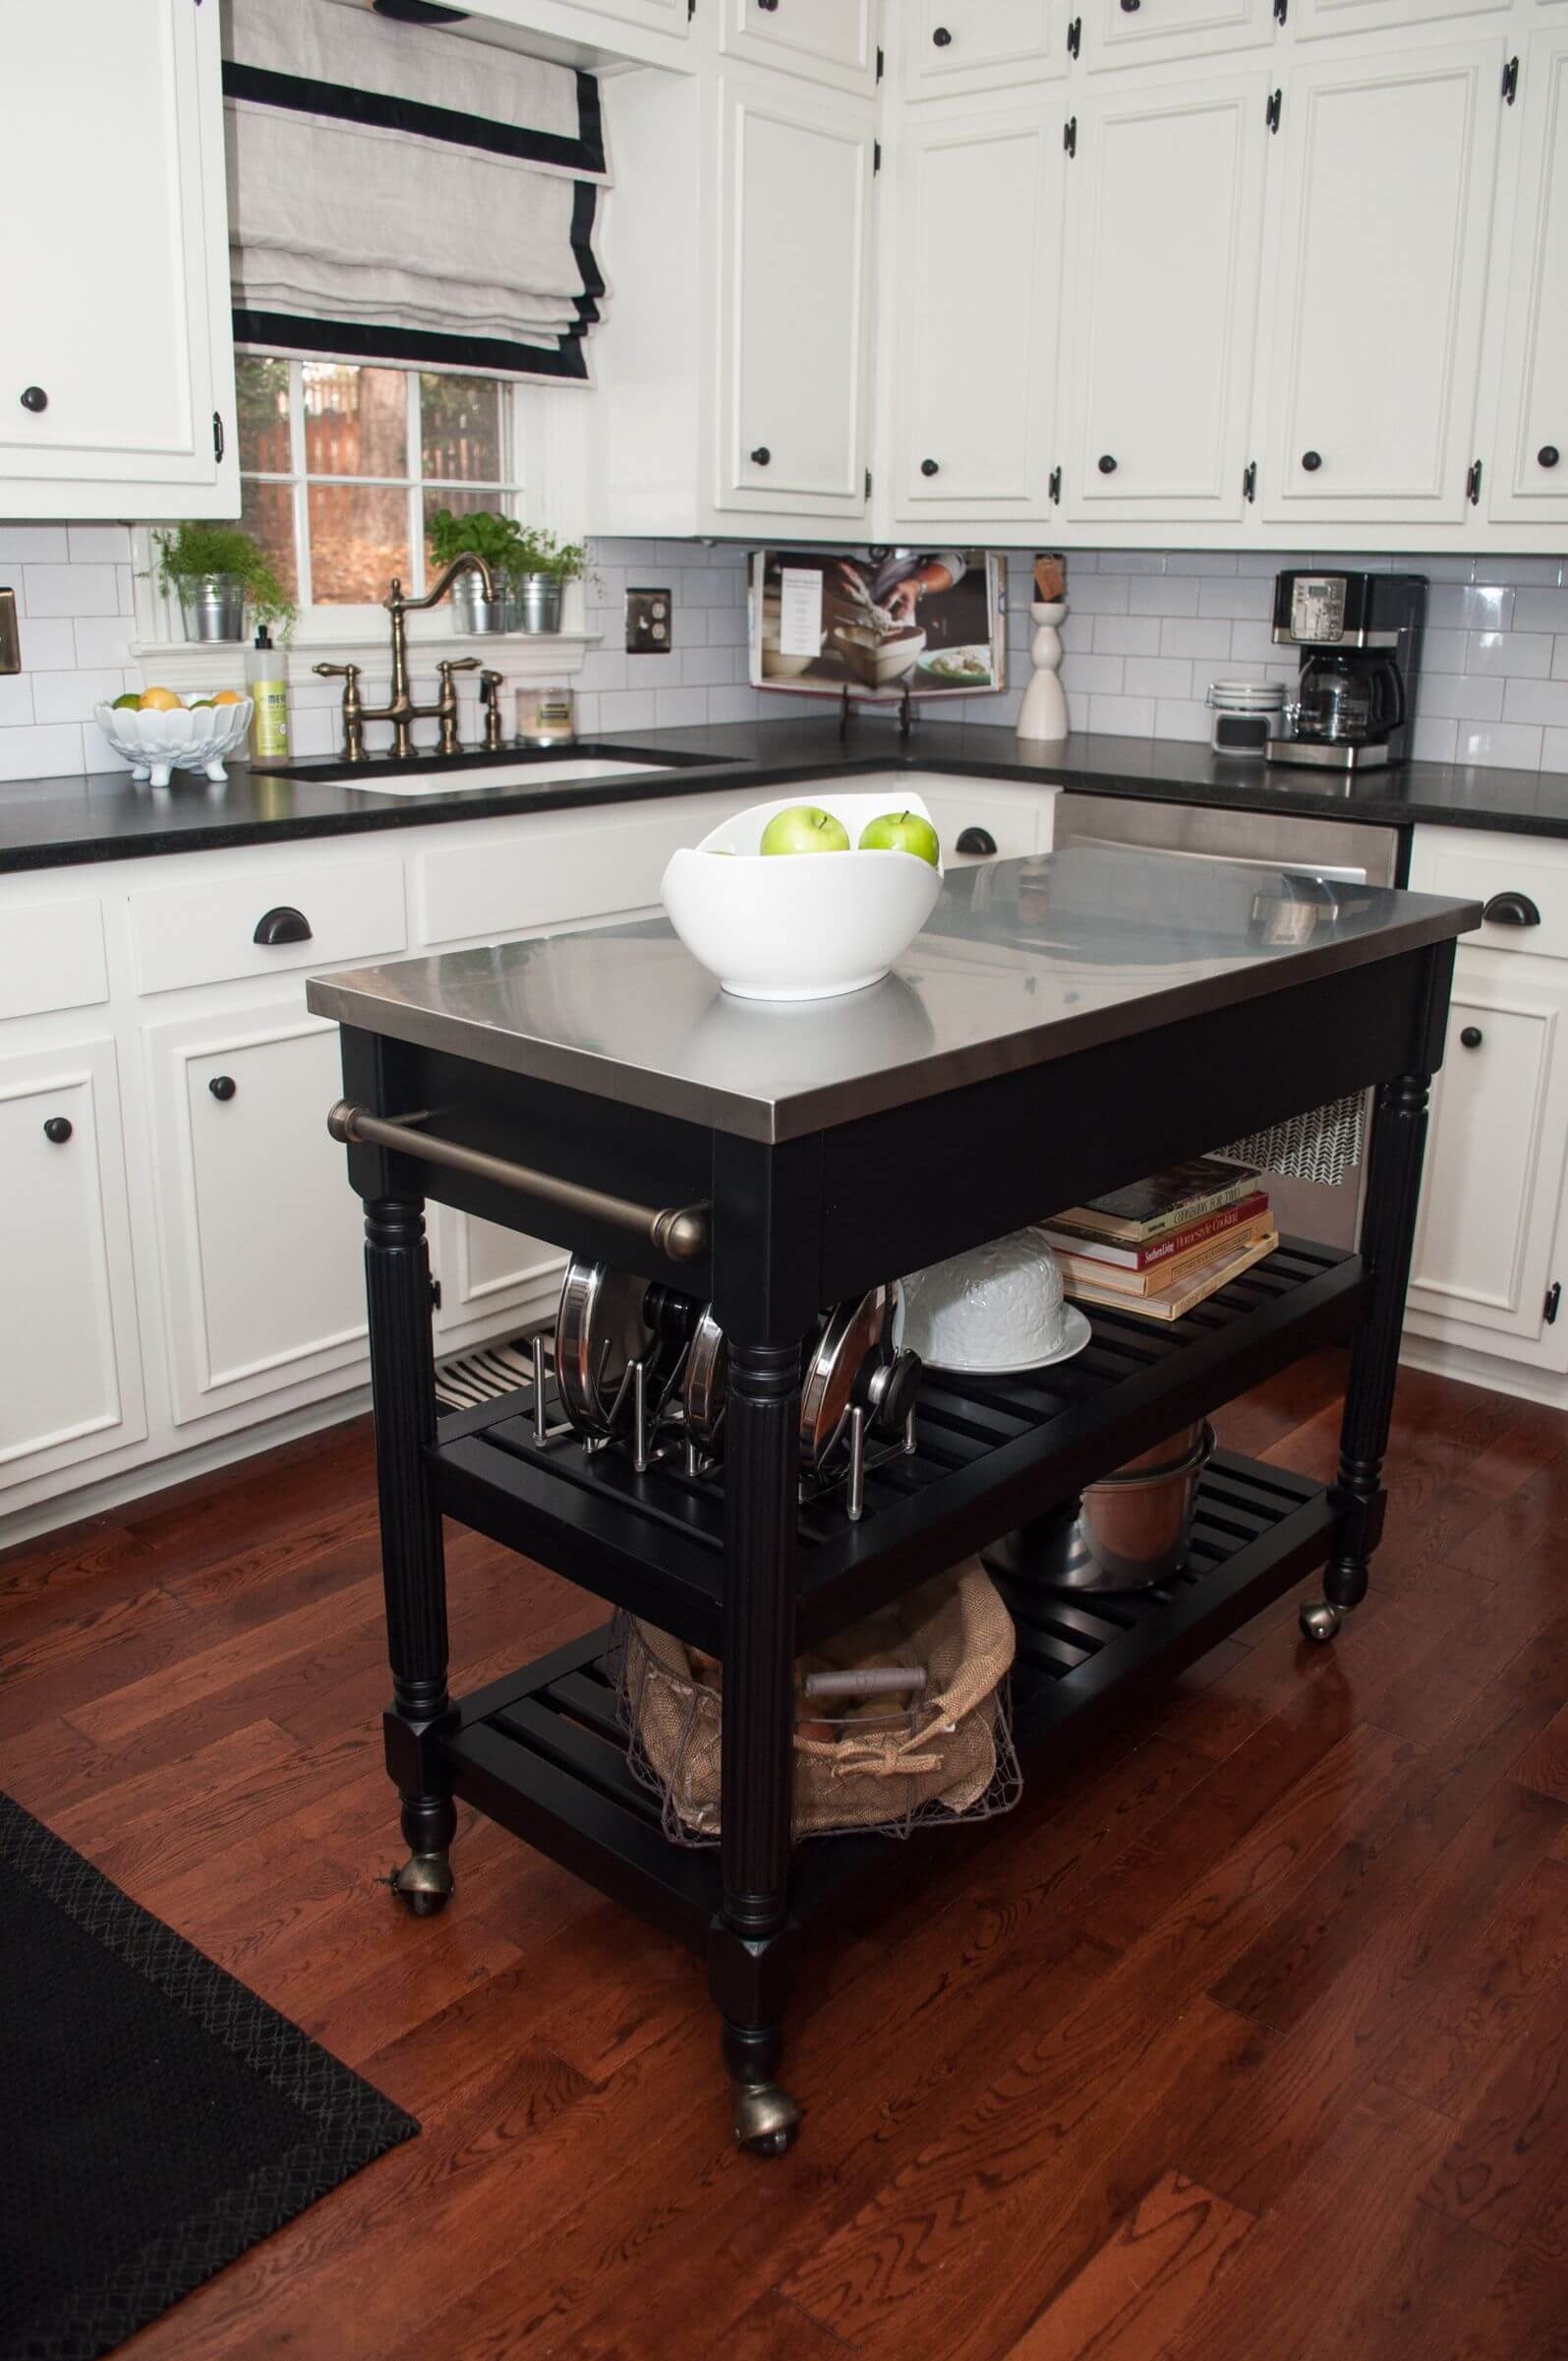 11 Types of Small Kitchen Islands & Carts on Wheels (2020)